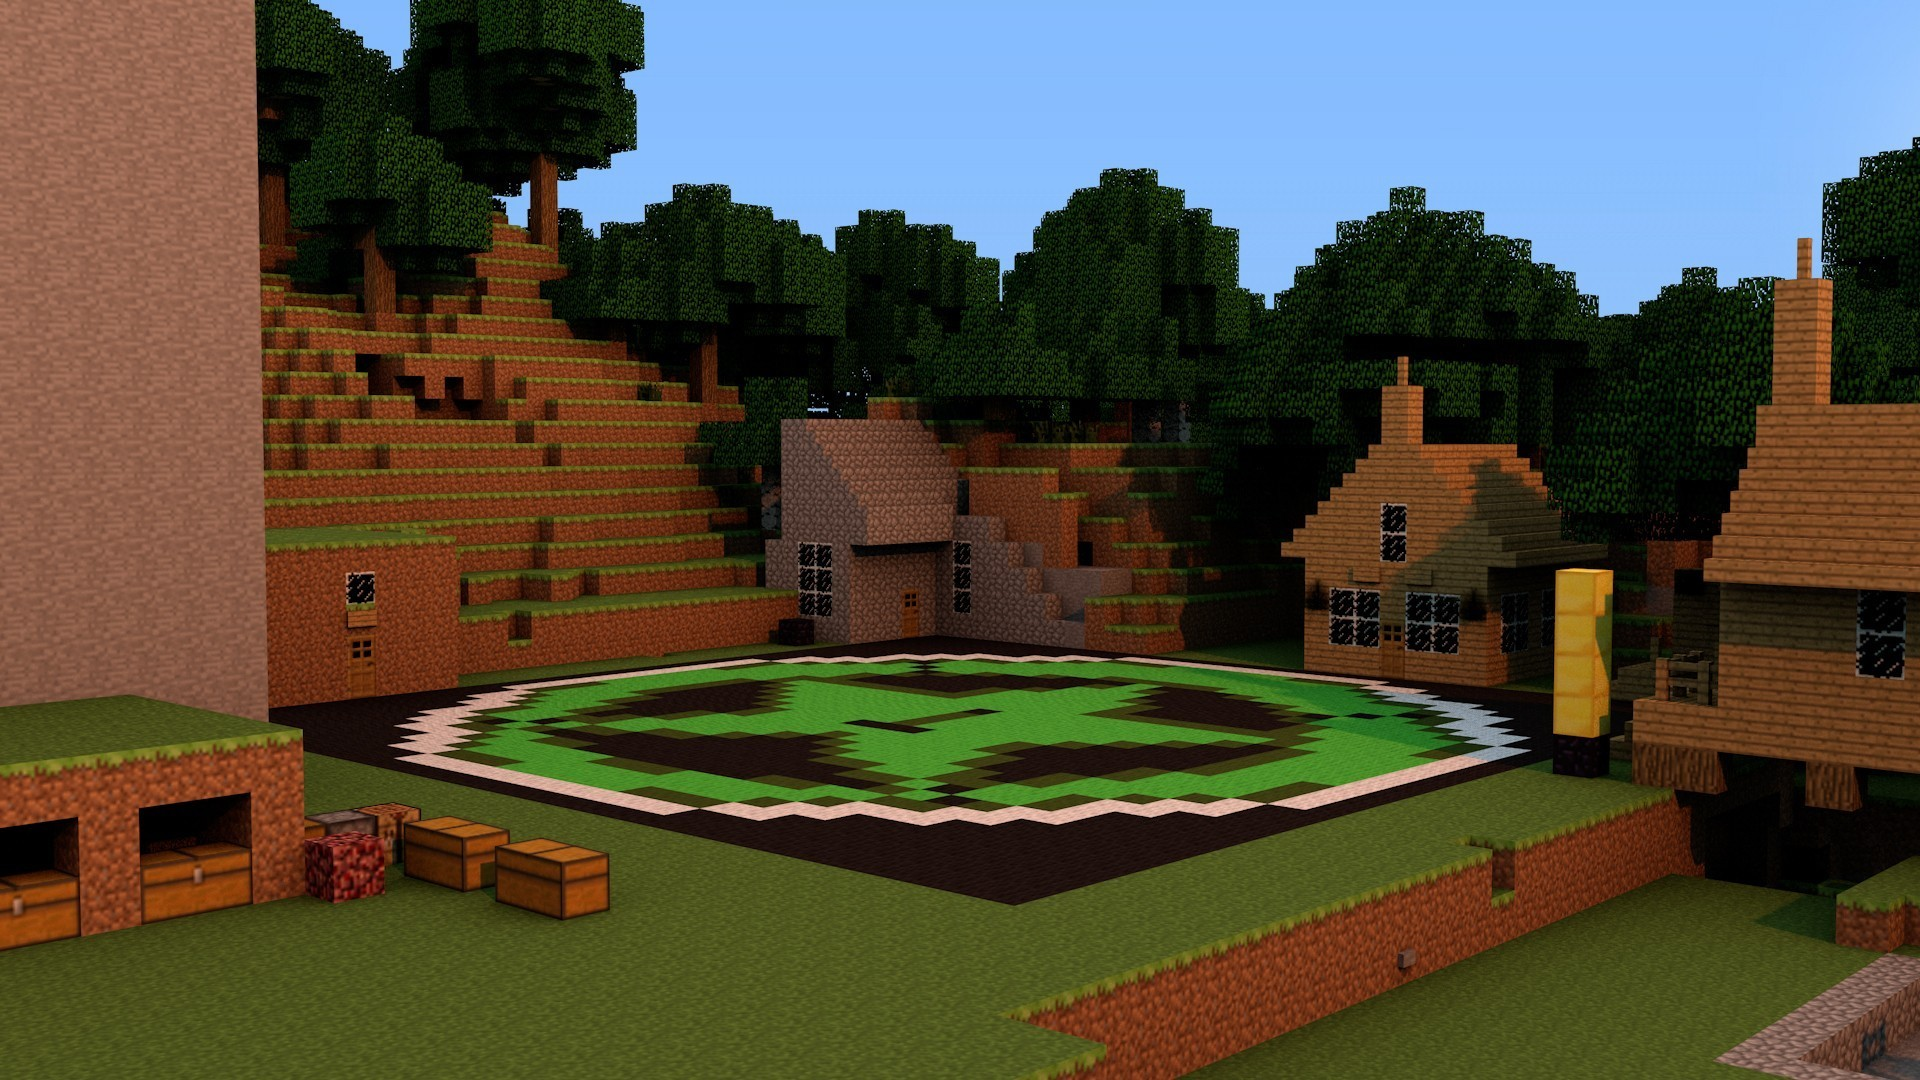 Res: 1920x1080, Minecraft rooster teeth achievement hunter city wallpaper